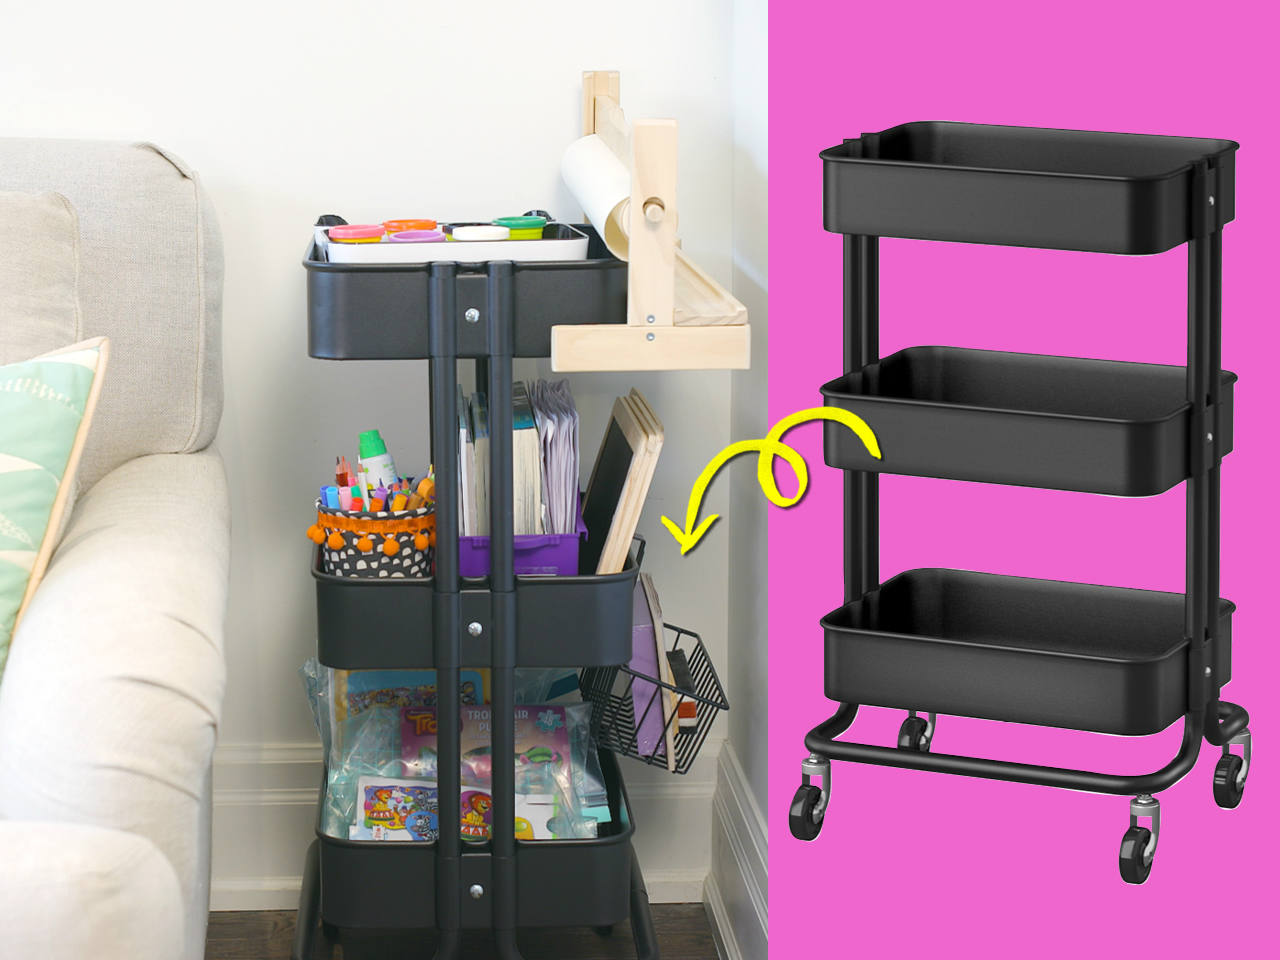 Ikea hack: Turn a rolling cart into an awesome art station